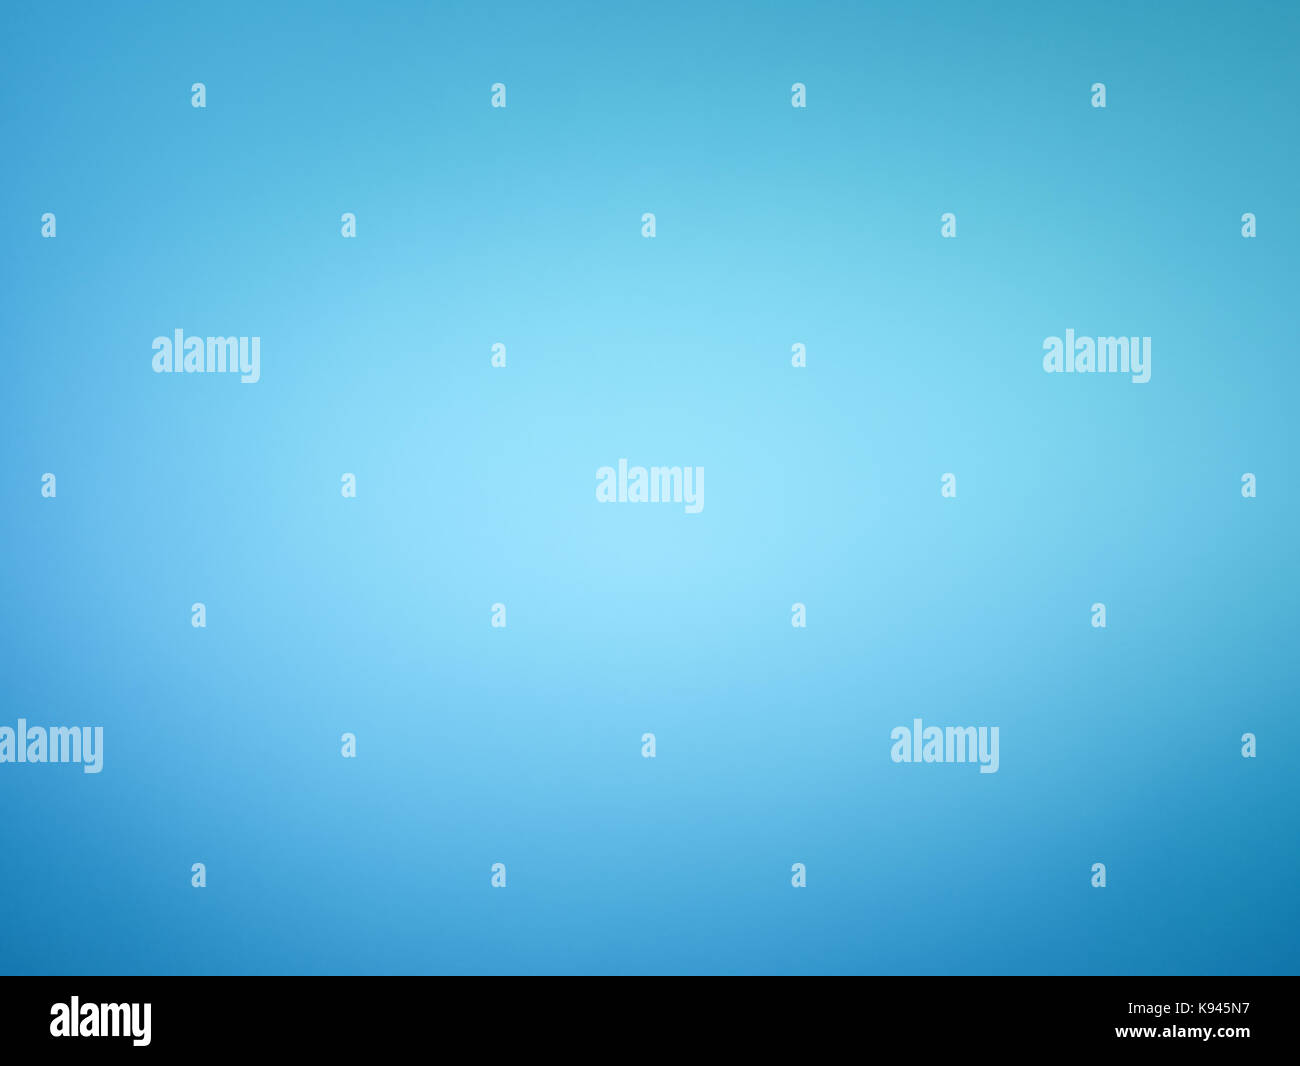 Simple Blue Gradient Light Background With Retro ColorSpace For Text Composition Art Image Website Magazine Or Graphic Commercial Campaign Desi